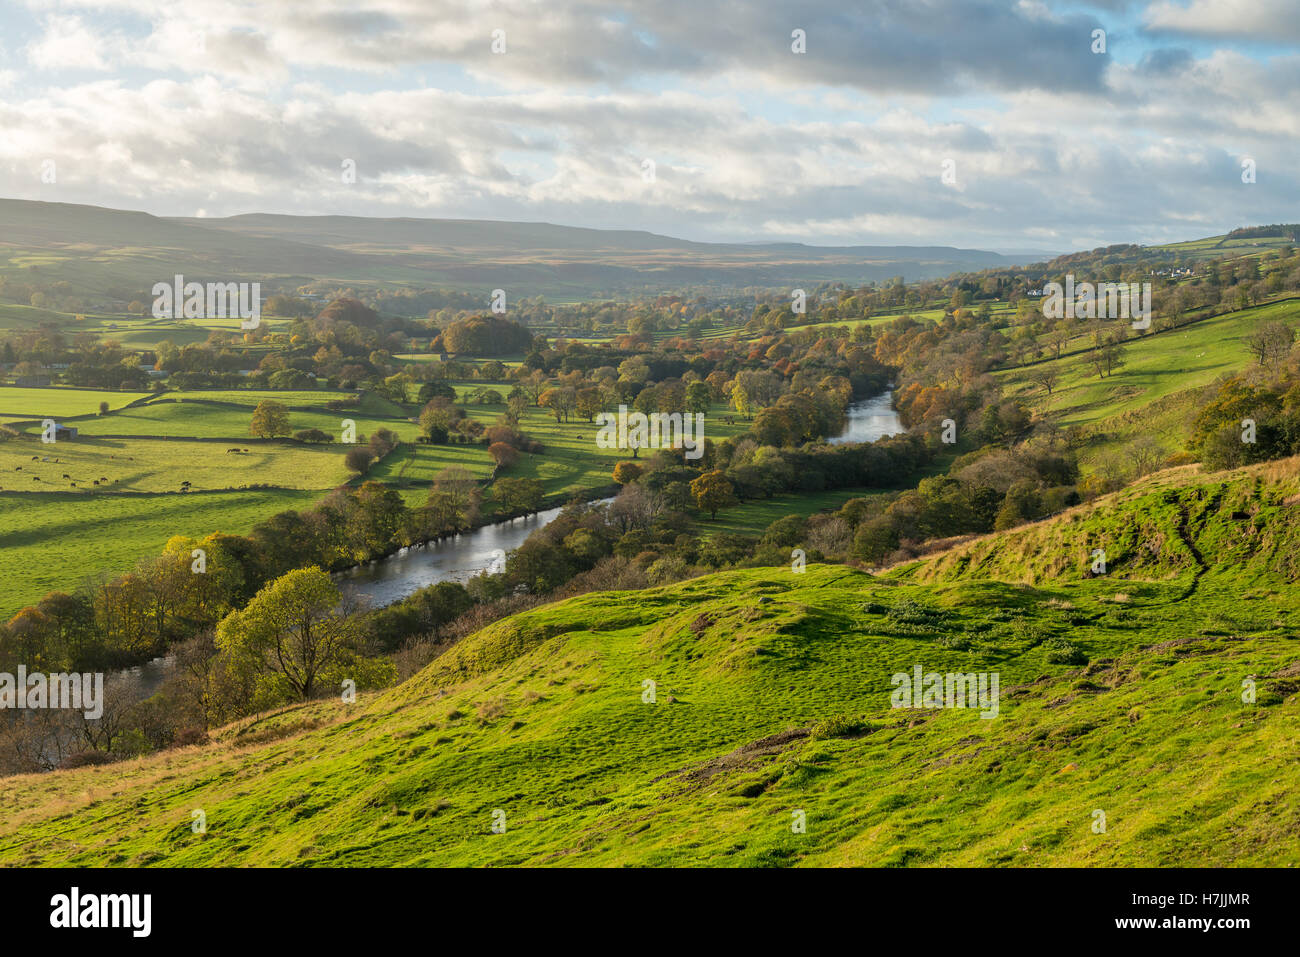 The River Tees running through Upper Teesdale in County Durham - Stock Image